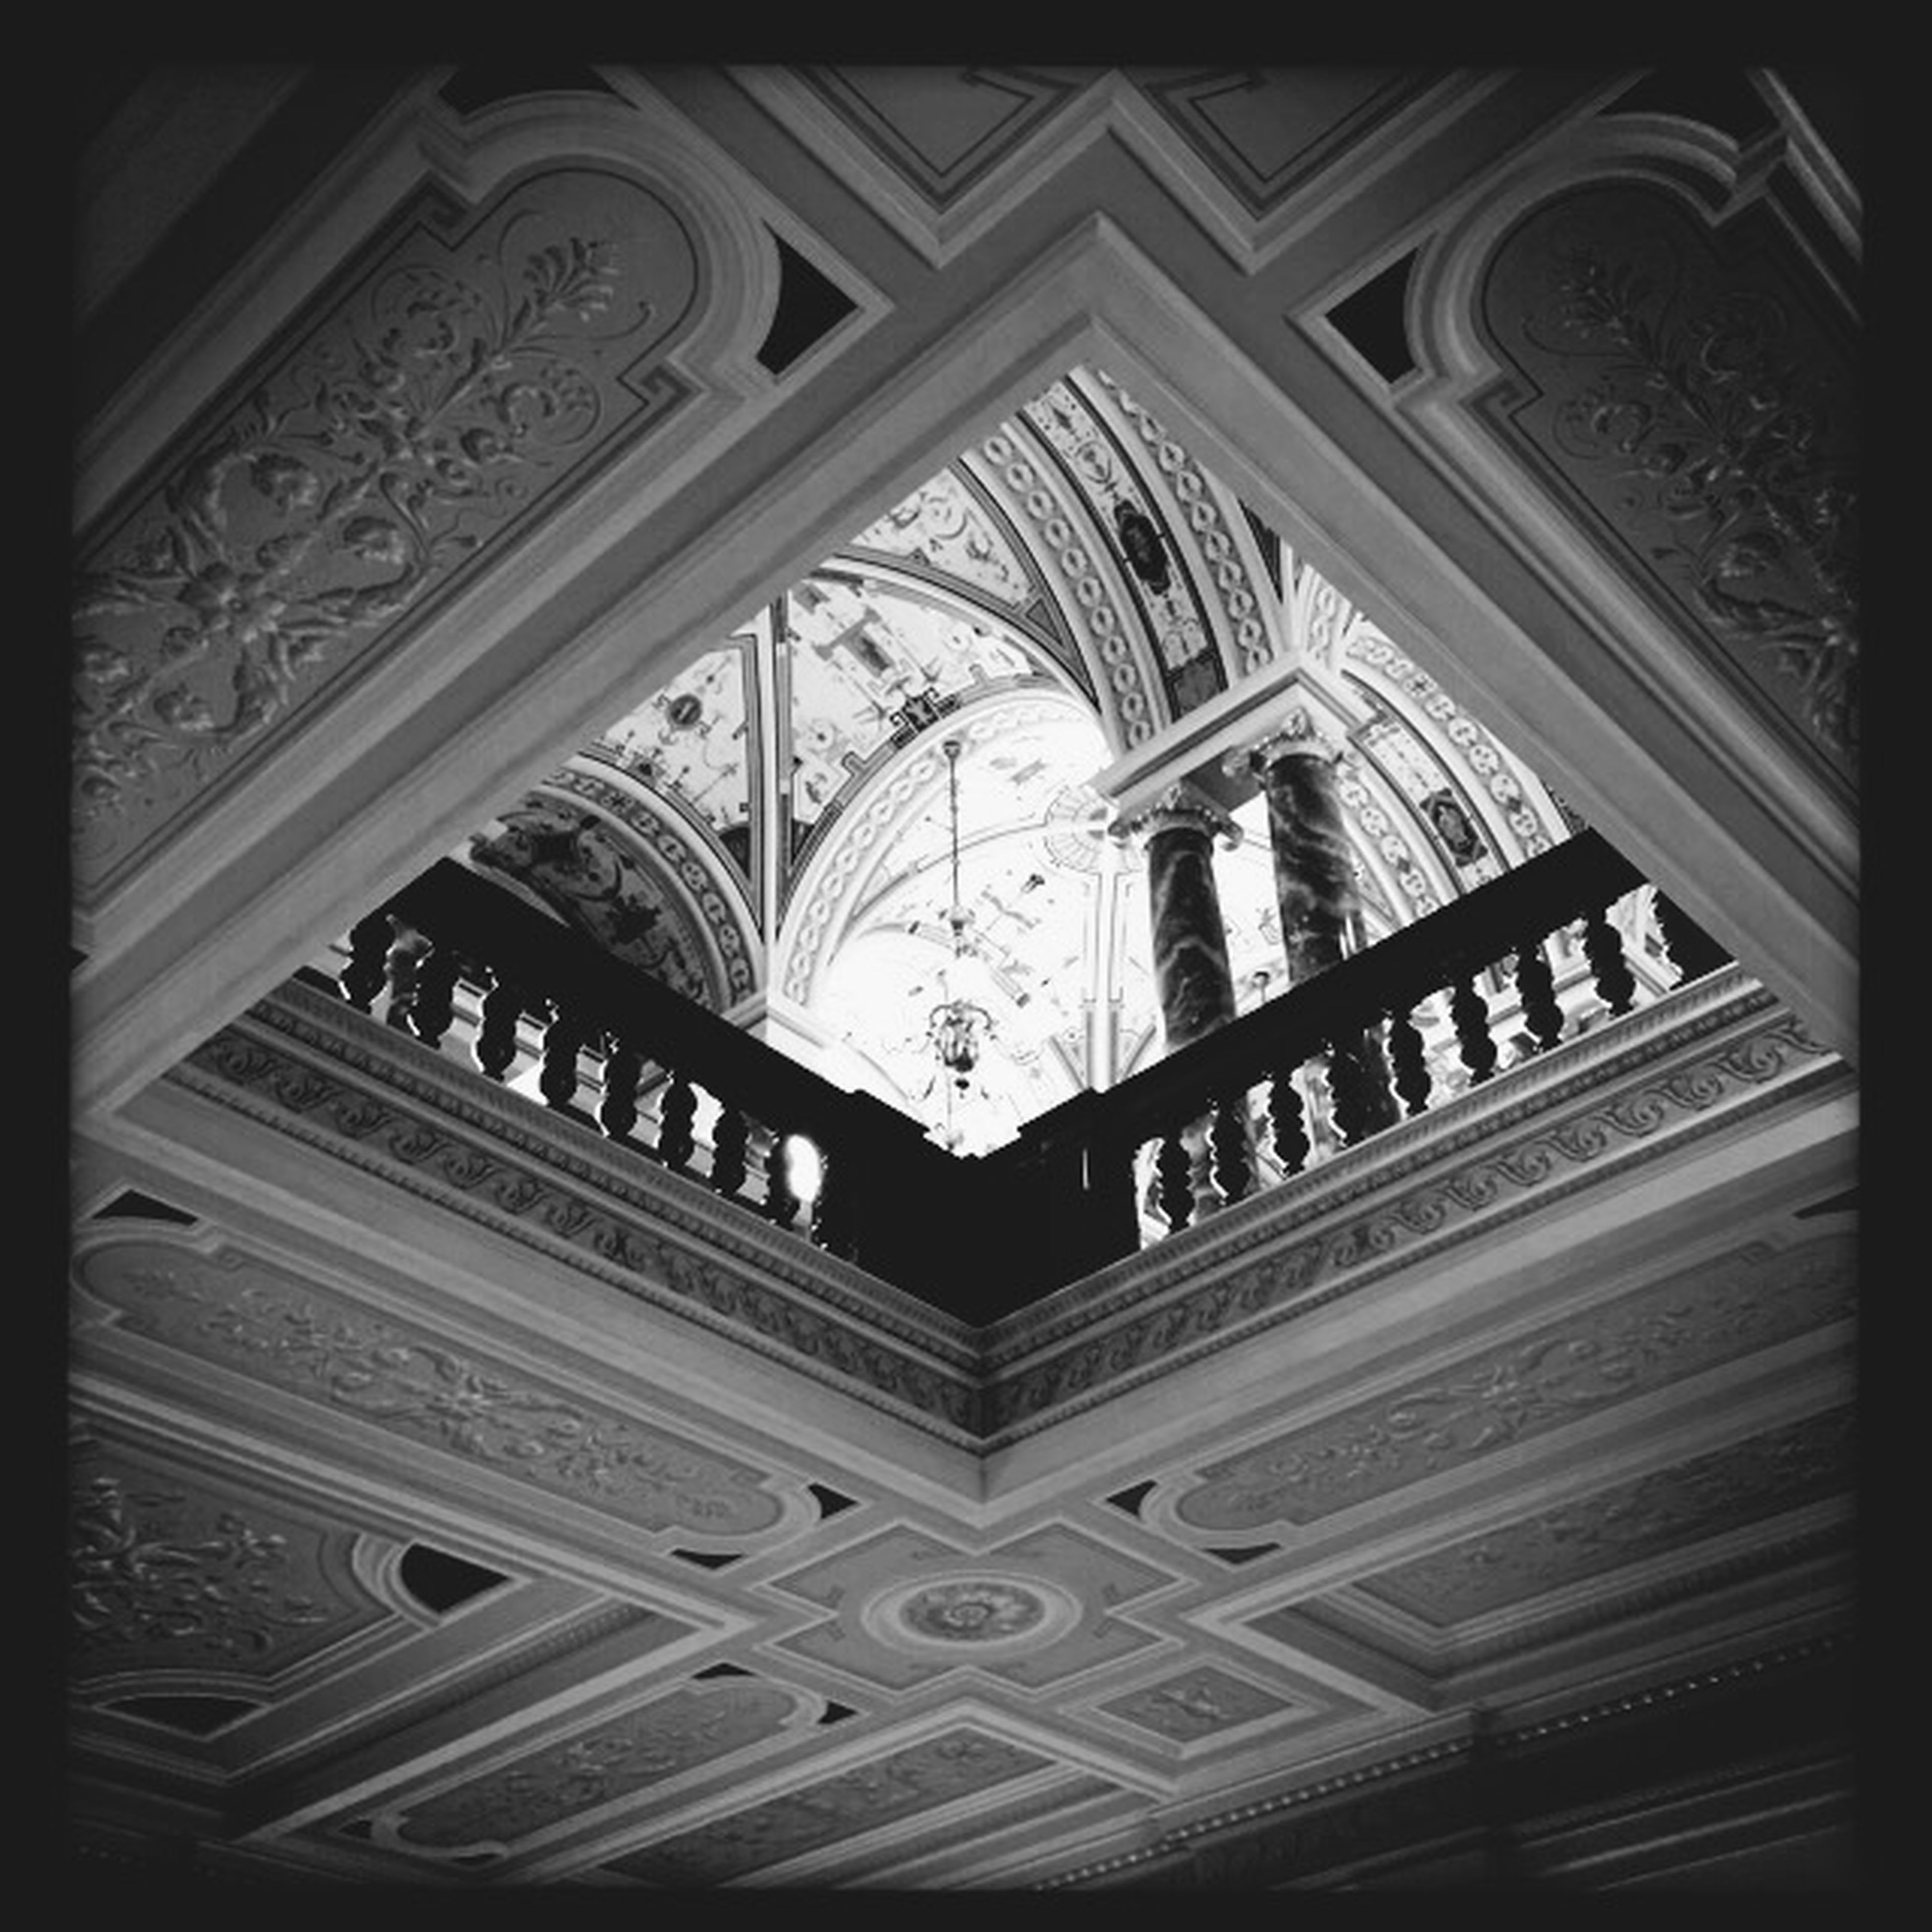 architecture, built structure, low angle view, indoors, place of worship, religion, church, spirituality, building exterior, history, ornate, transfer print, ceiling, arch, old, architectural feature, art and craft, window